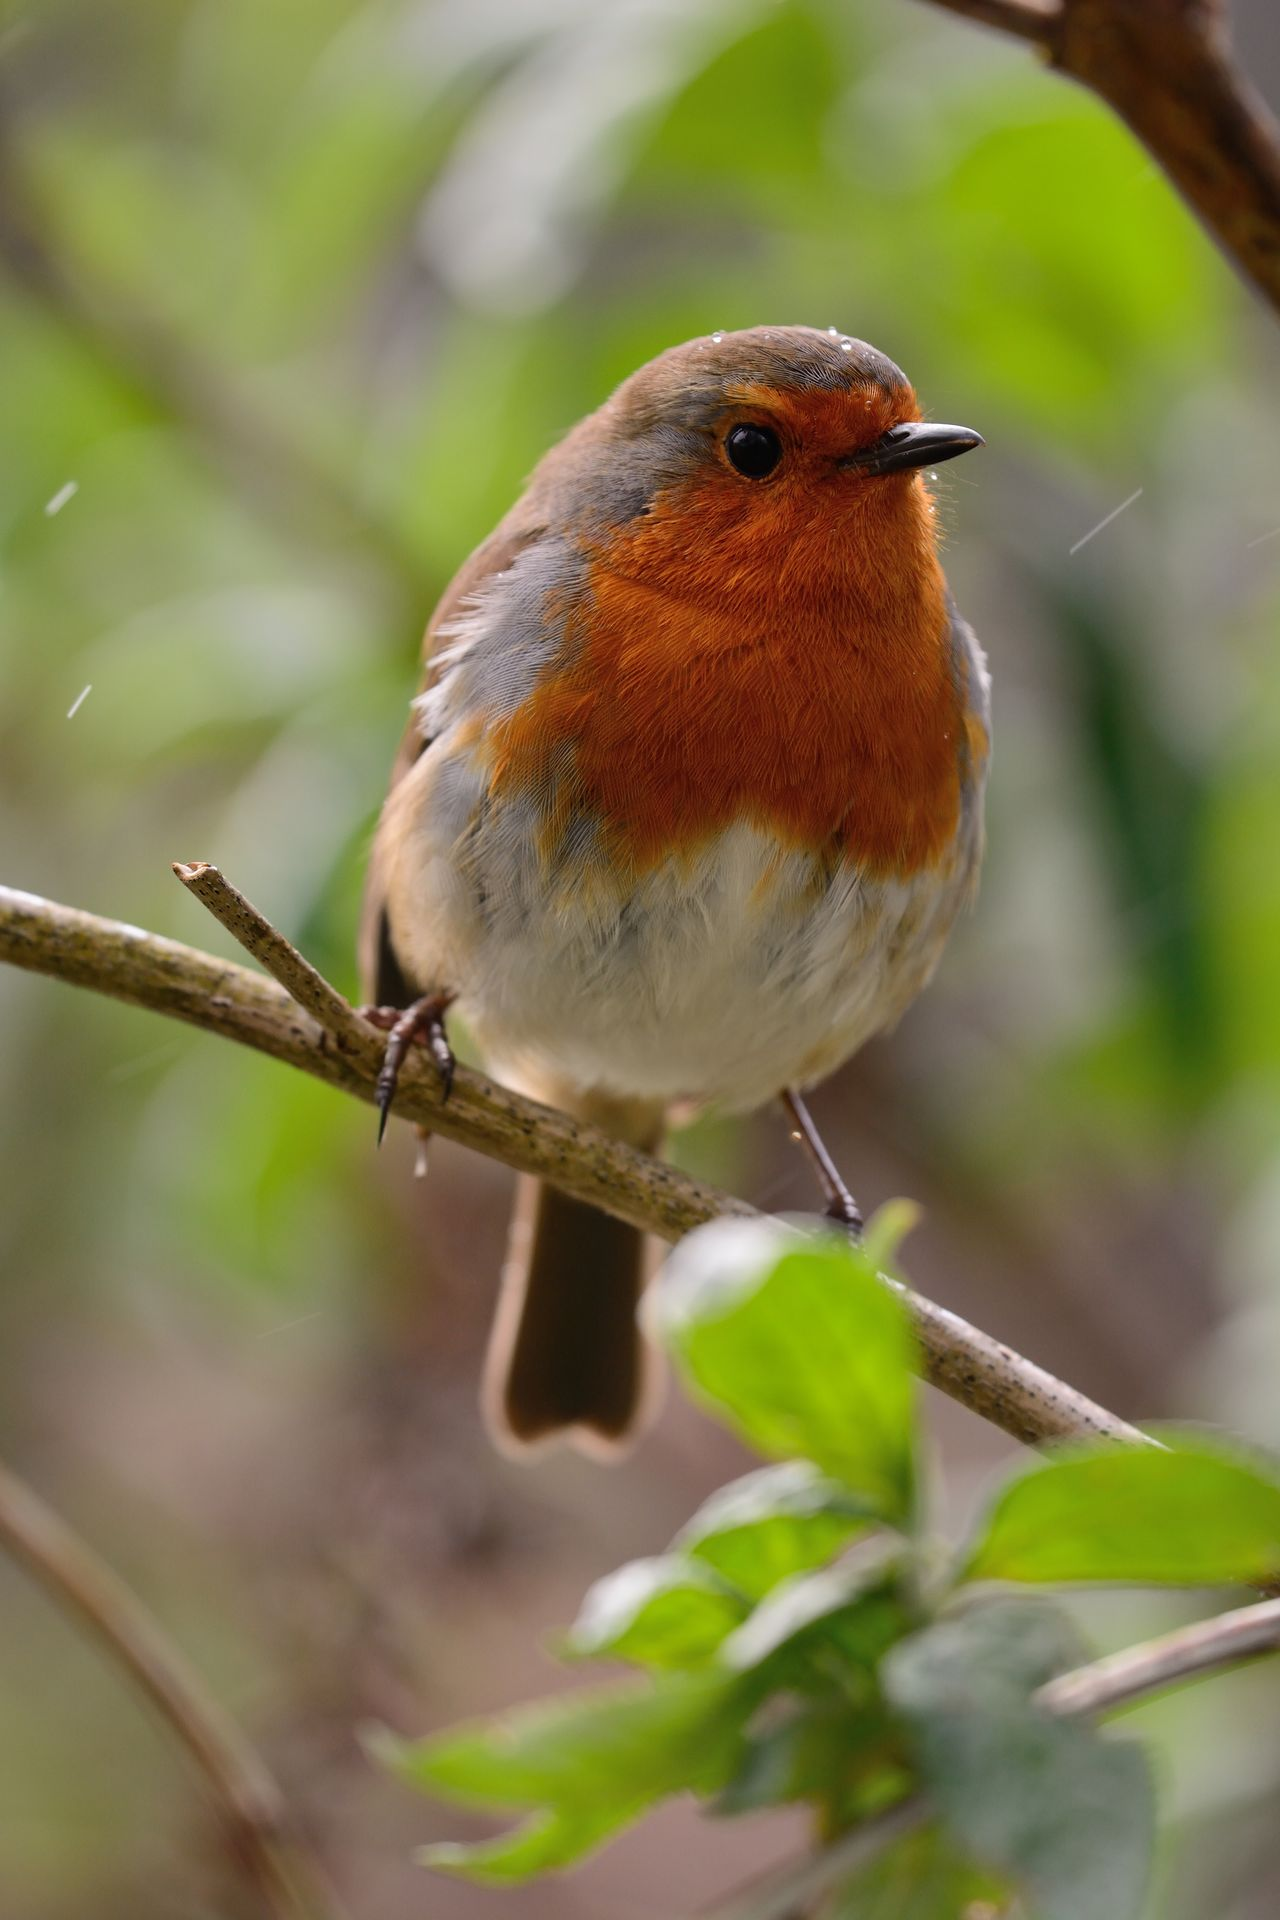 Animal Themes Animal Wildlife Animals In The Wild Beauty In Nature Bird Birds Branch Check This Out Close-up Day Eye4photography  EyeEm Best Shots EyeEm Nature Lover Focus On Foreground Nature Nature Photography Nature_collection No People One Animal Outdoors Perching Robin Songbird  Taking Photos Wildlife